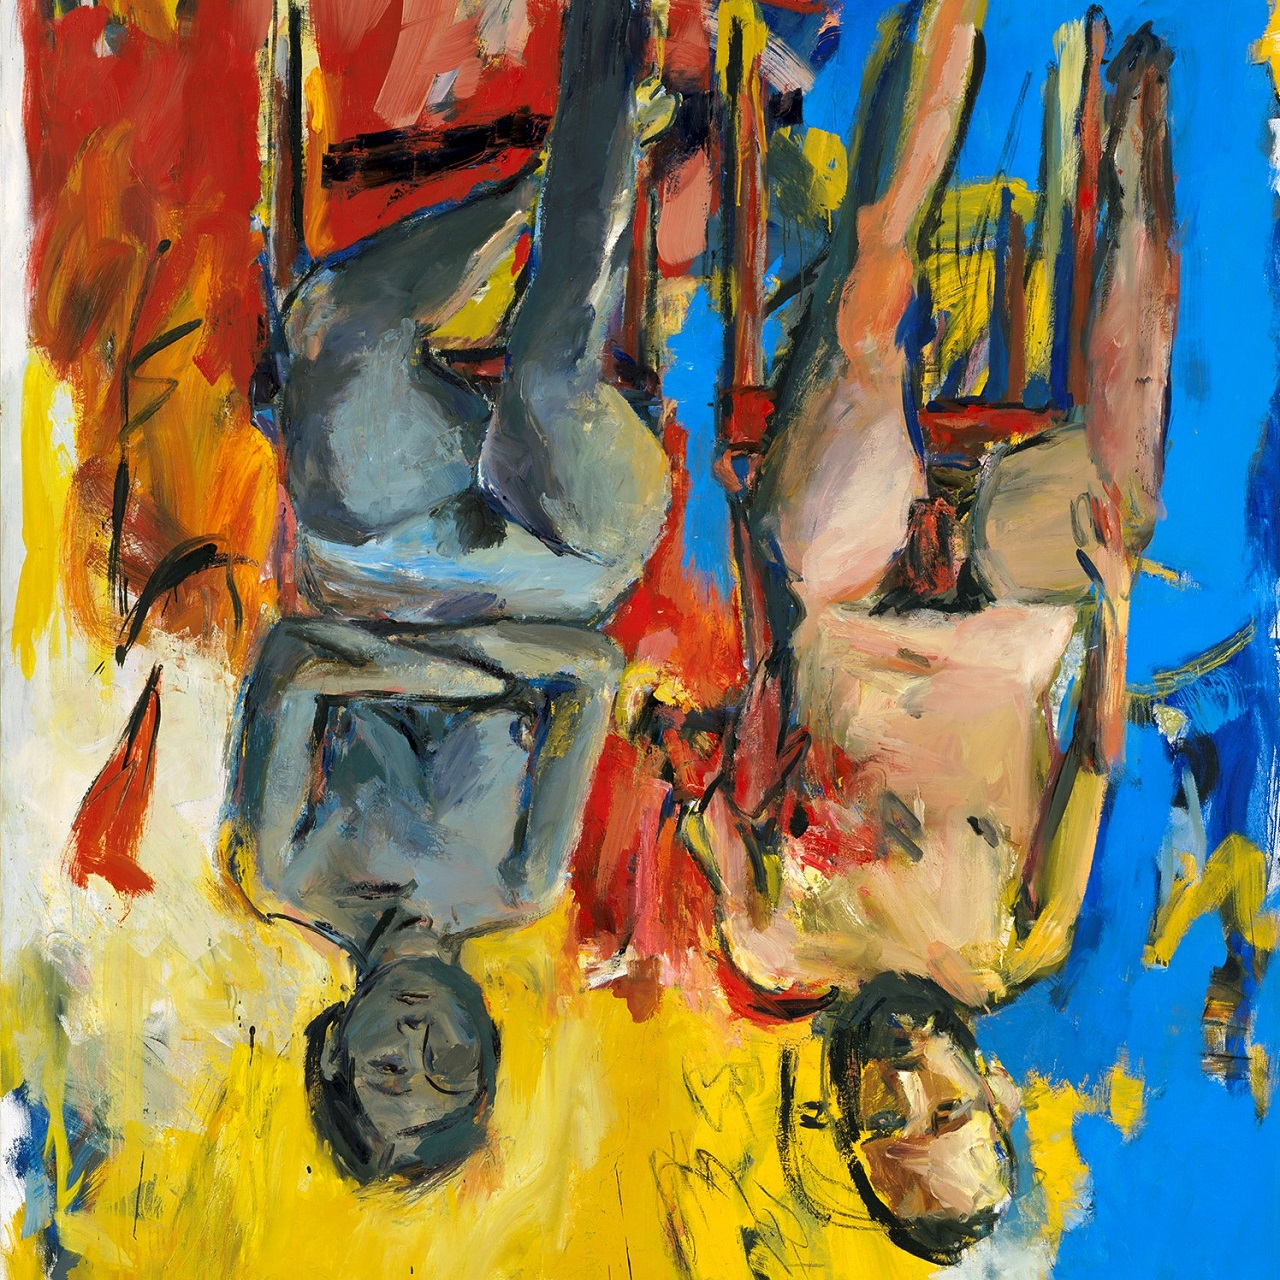 Gallerie dell'Accademia | Baselitz – Academy